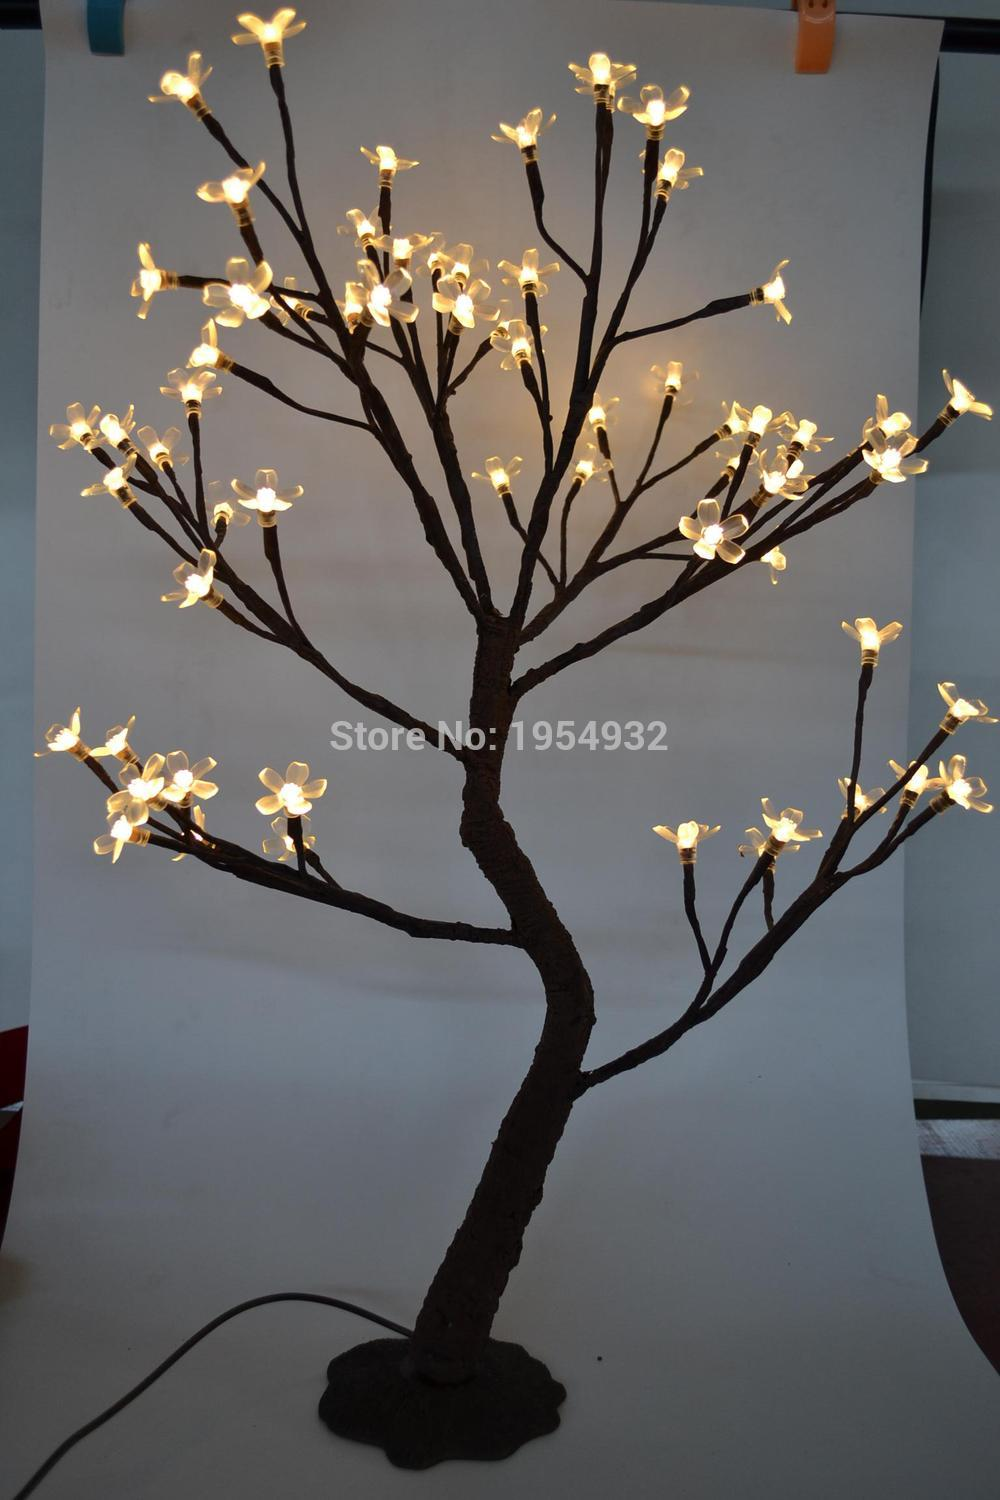 Outdoor 64 Led Cherry Blossom Tree